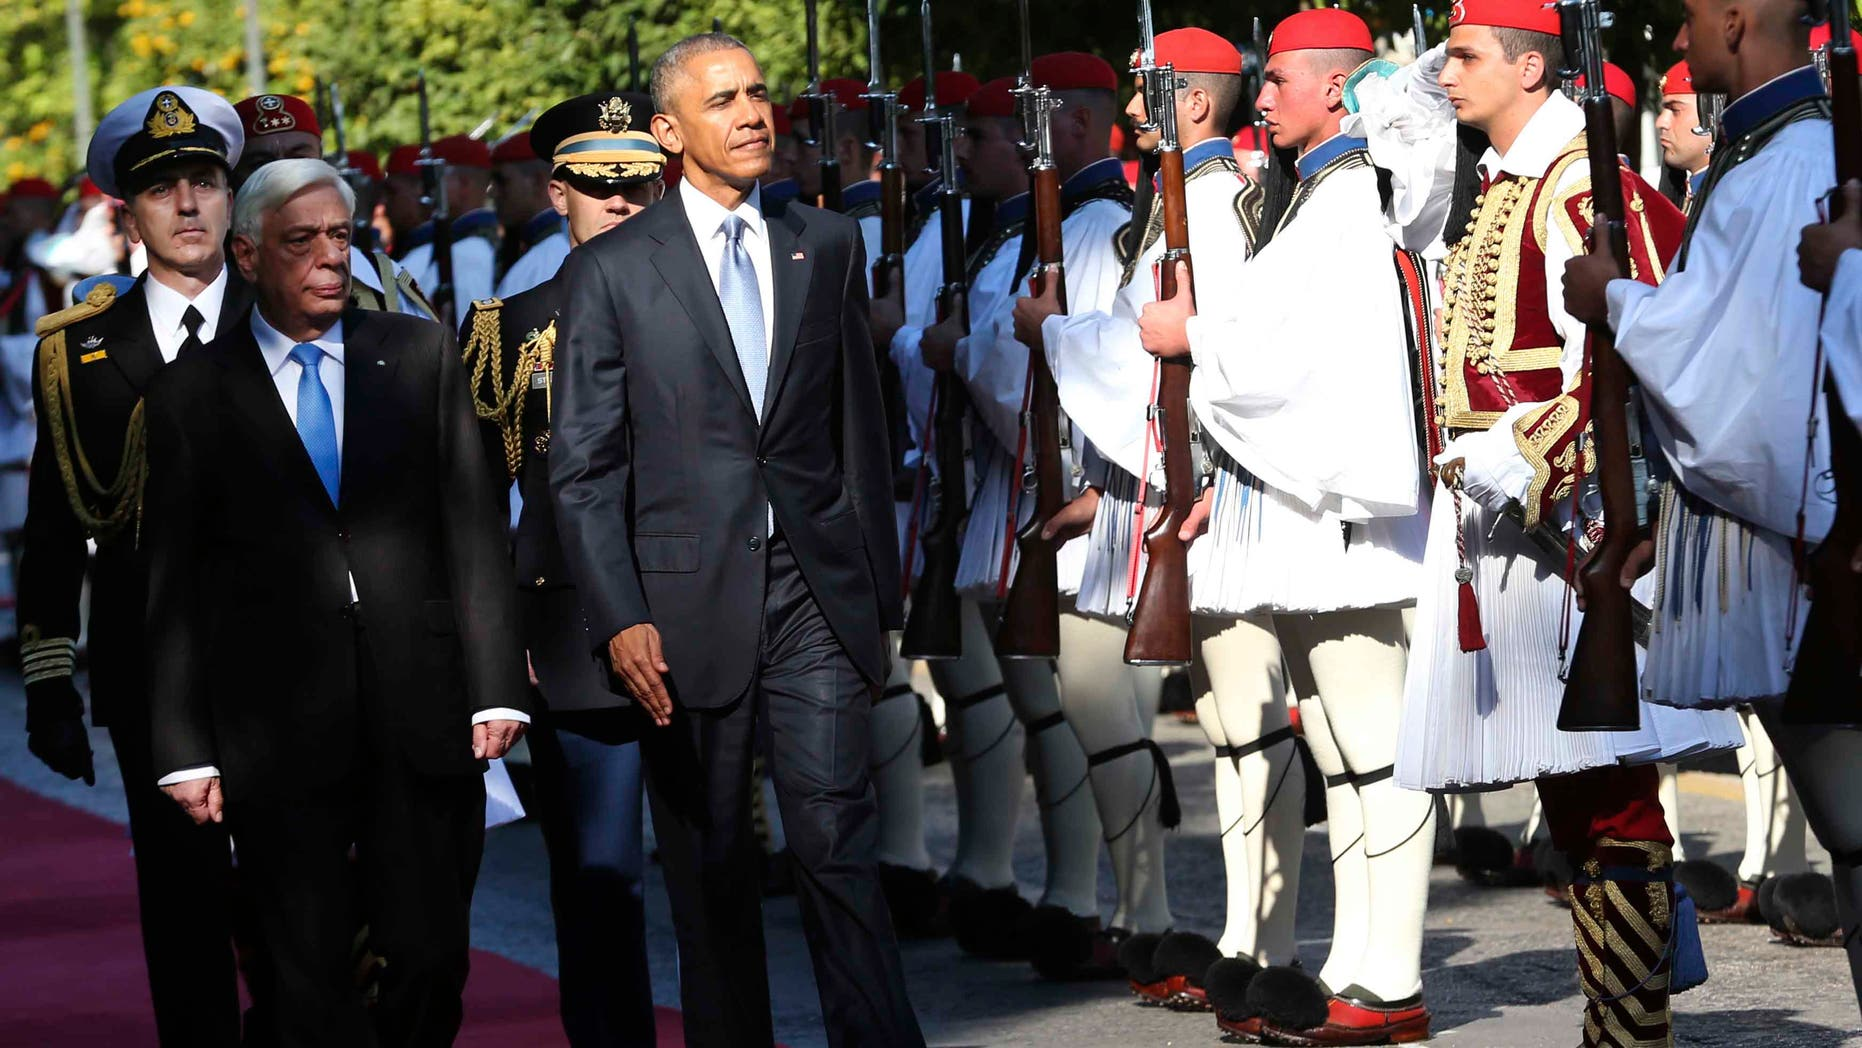 US President Barack Obama and his greek counterpart Prokopis Pavlopoulos review the Presidential Guard in Athens, Tuesday, Nov. 15, 2016. President Barack Obama arrived in Greece Monday morning on the first stop of his final foreign tour as president, the first visit to Greece by a sitting U.S. president since Bill Clinton in 1999 trip. (AP Photo/Lefteris Pitarakis)